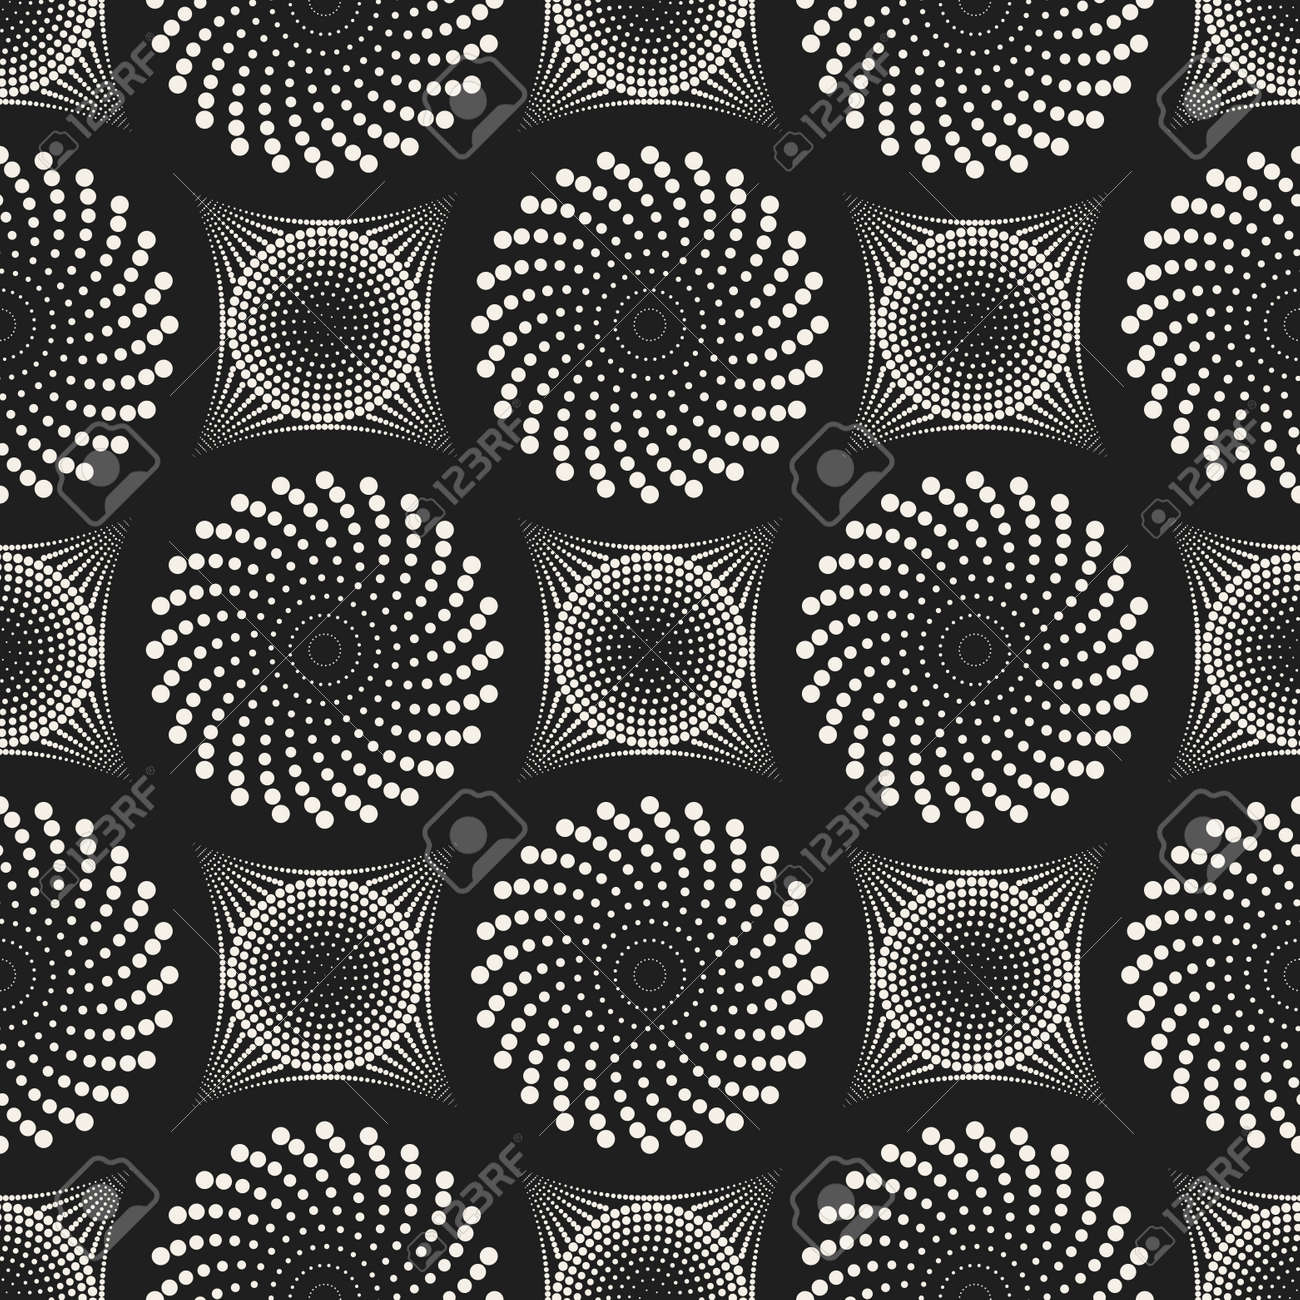 Vector seamless pattern. Modern stylish abstract texture. Repeating geometric circle and star tiles from striped decorative elements. - 167498050